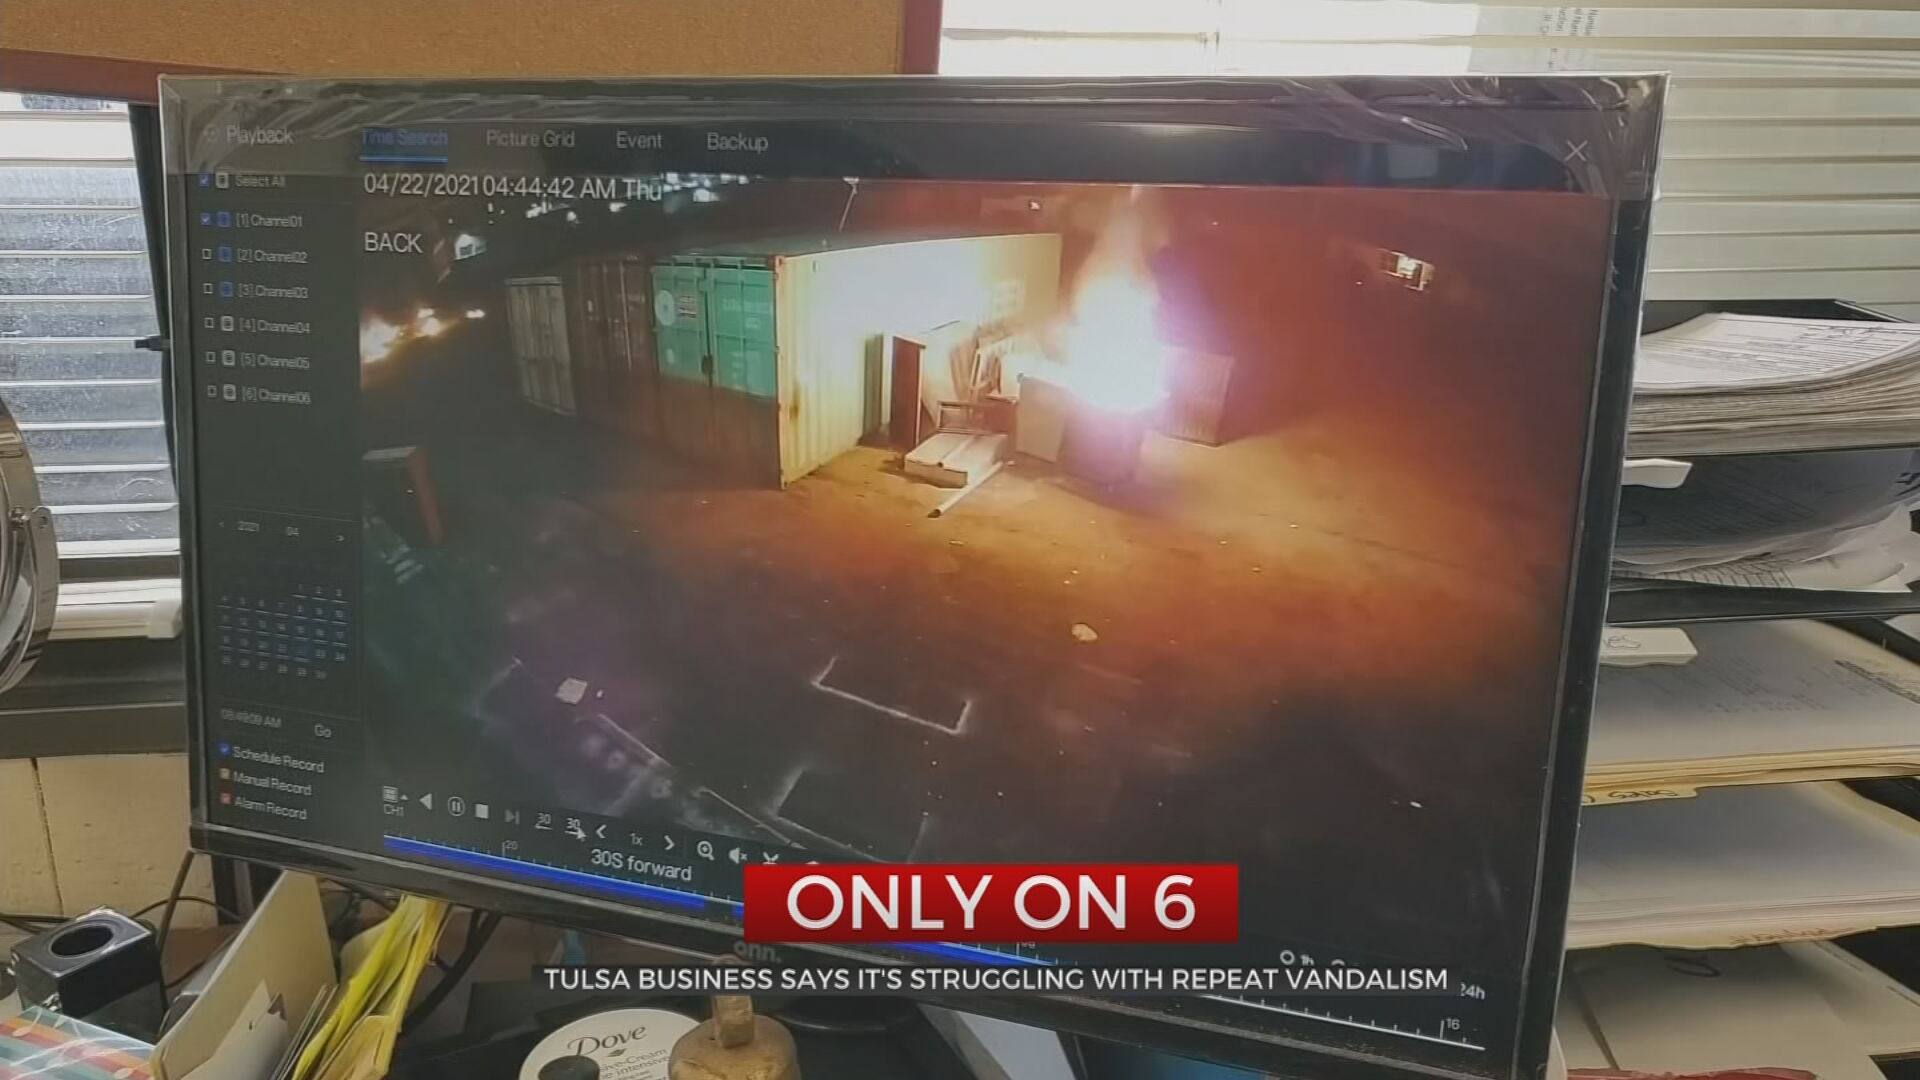 Accused Arsonist Damages Tulsa Business In Dumpster Fire Explosion